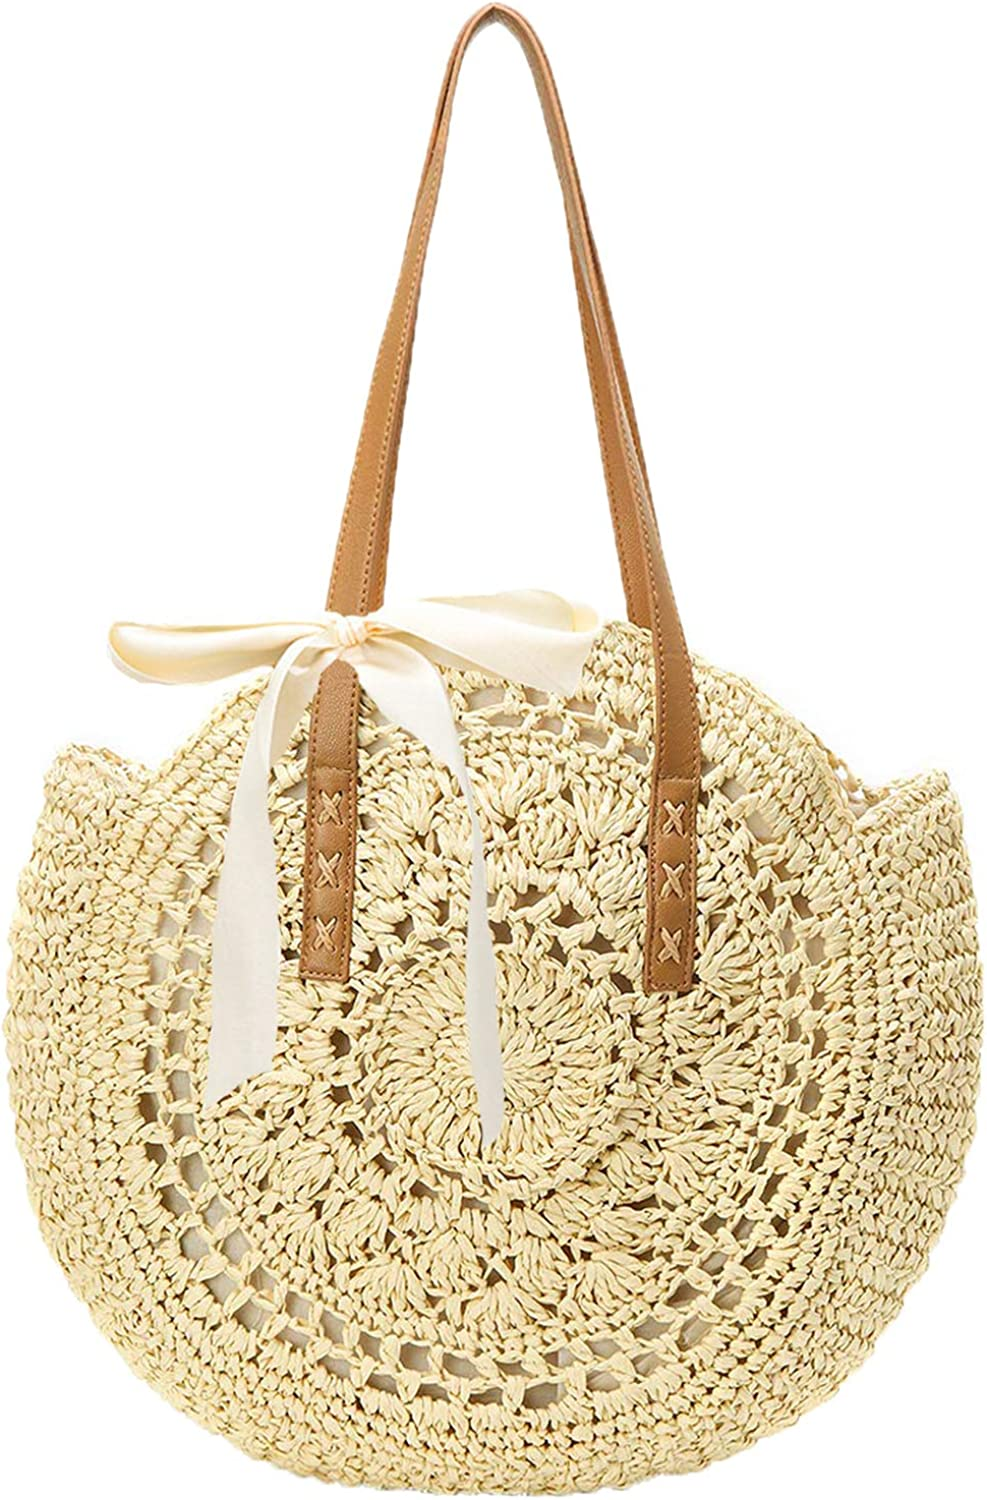 Straw Handbags Women Handwoven Round Corn Straw Bags Natural Chic Hand Large Summer Beach Tote Woven Handle Shoulder Bag